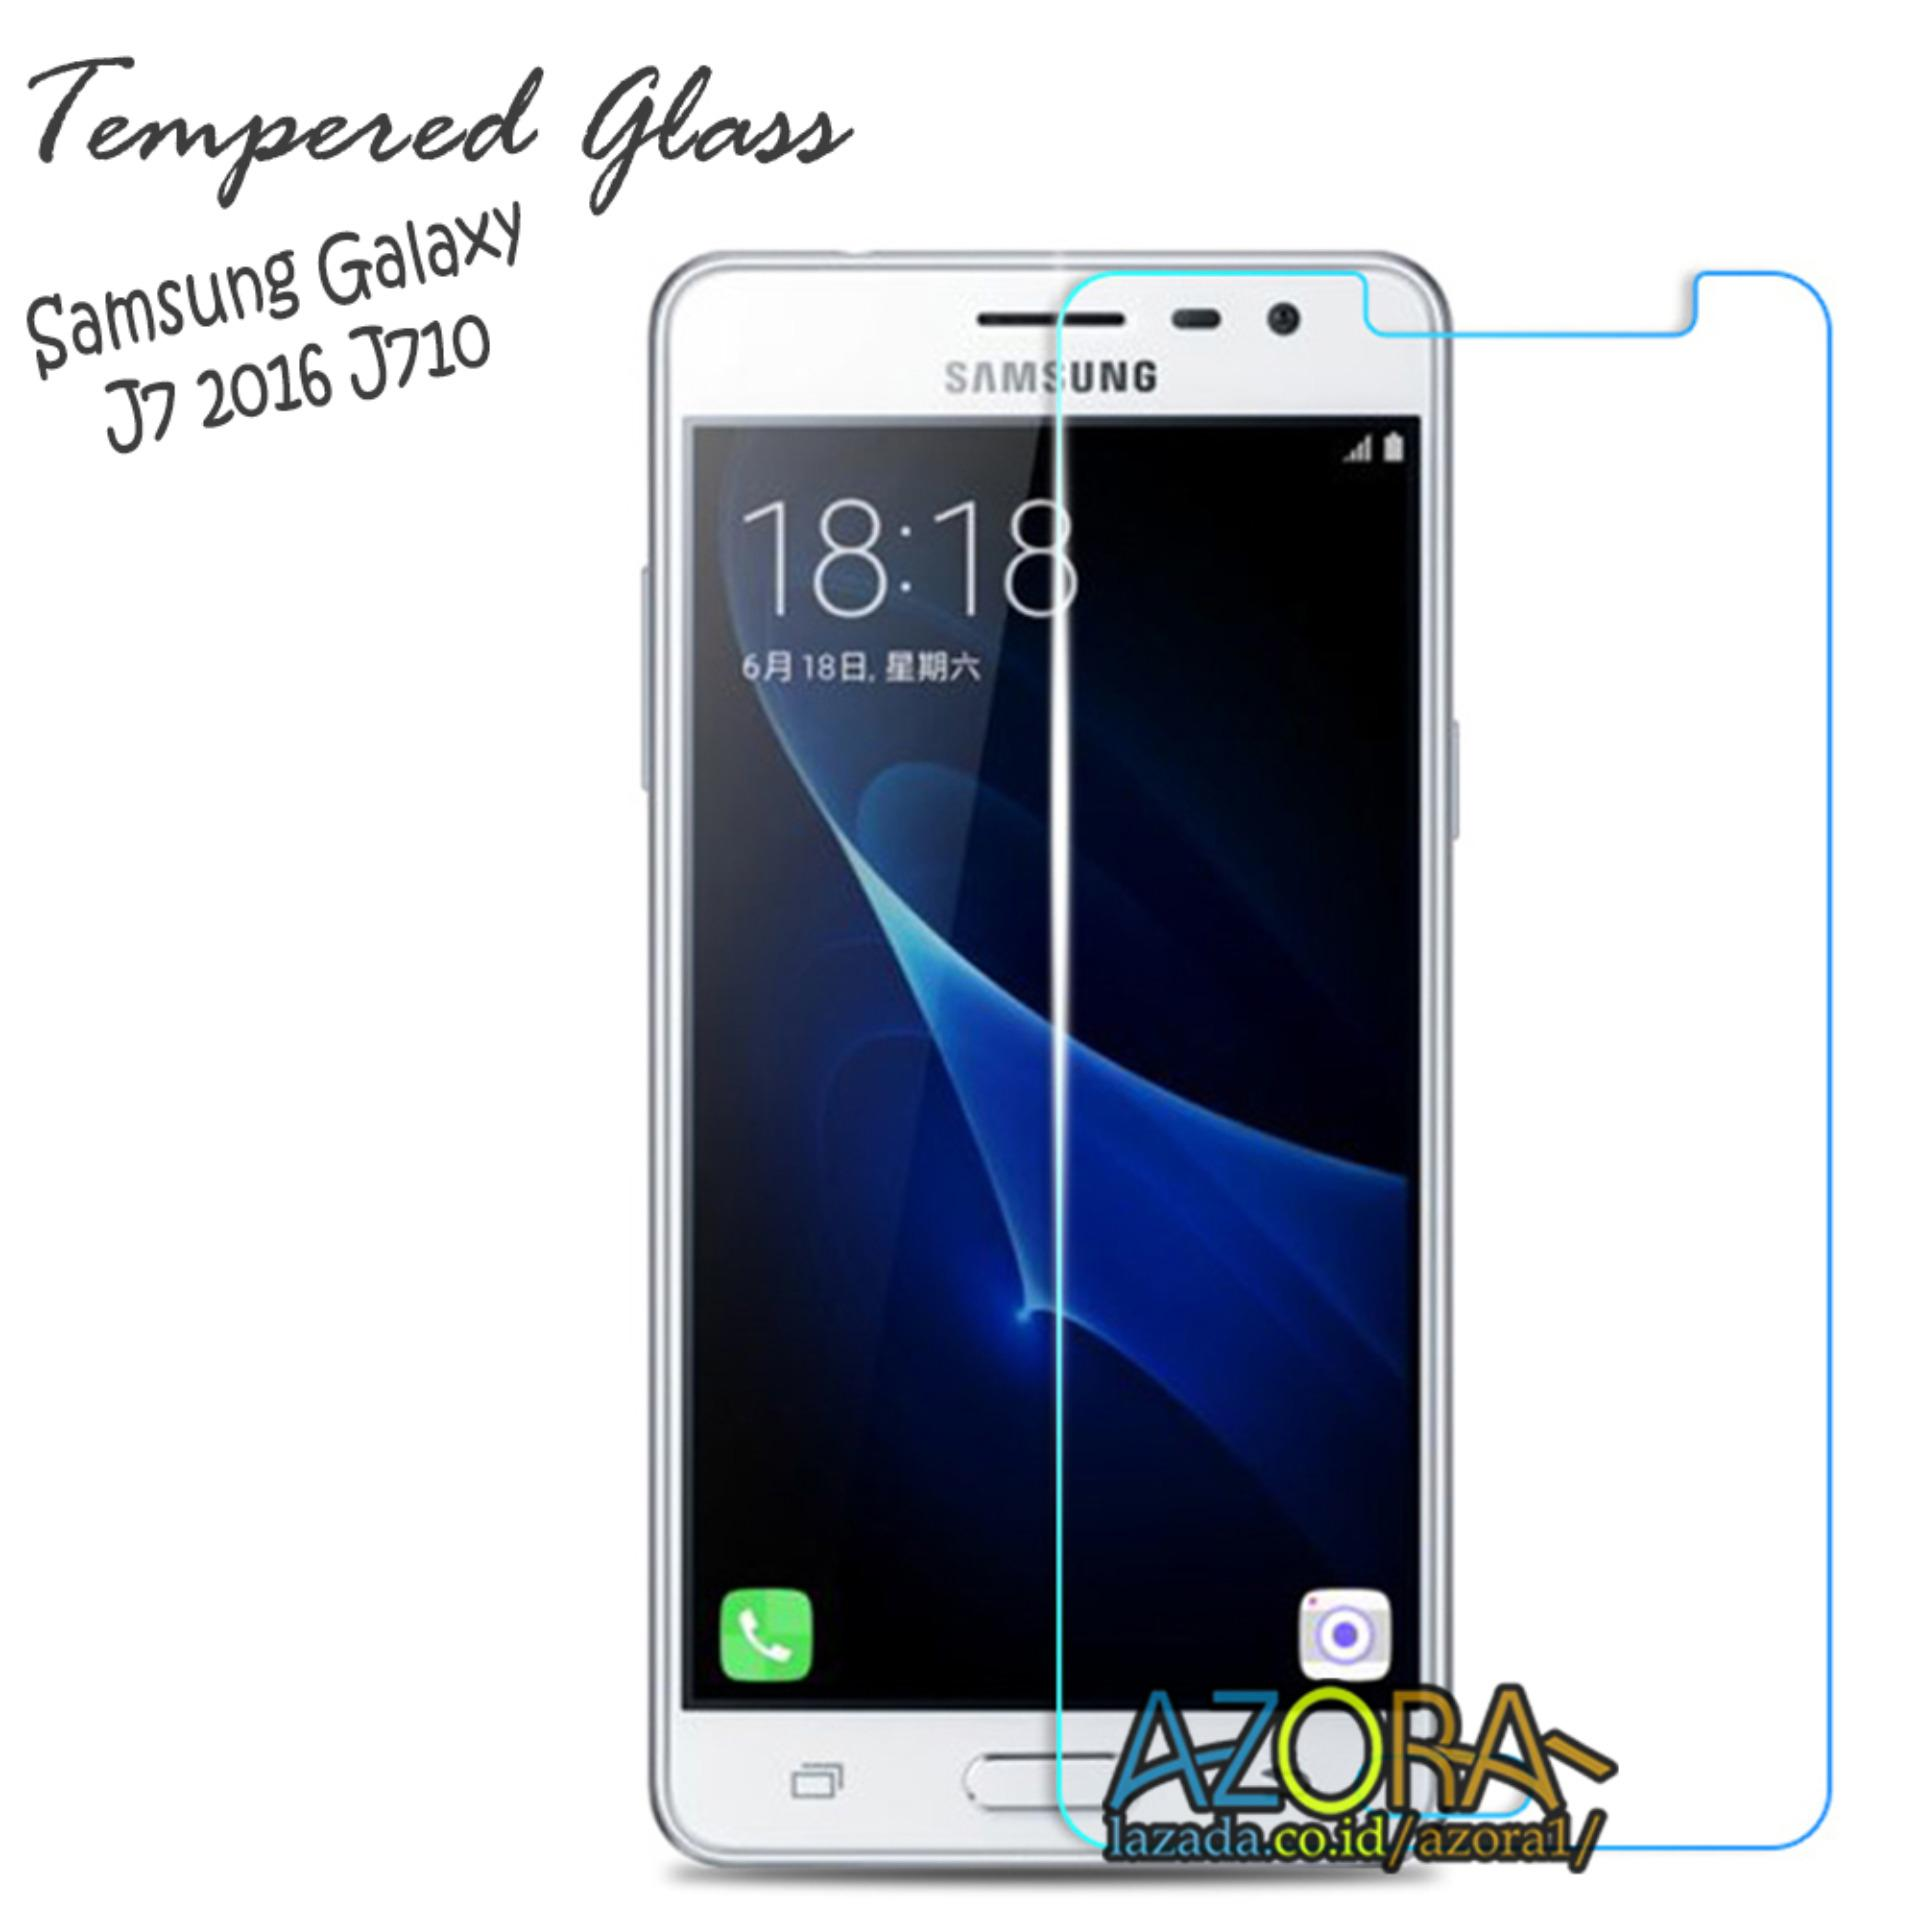 Tempered Glass Samsung Galaxy J7 2016 J710 Screen Protector Pelindung Layar Kaca Anti Gores - Bening